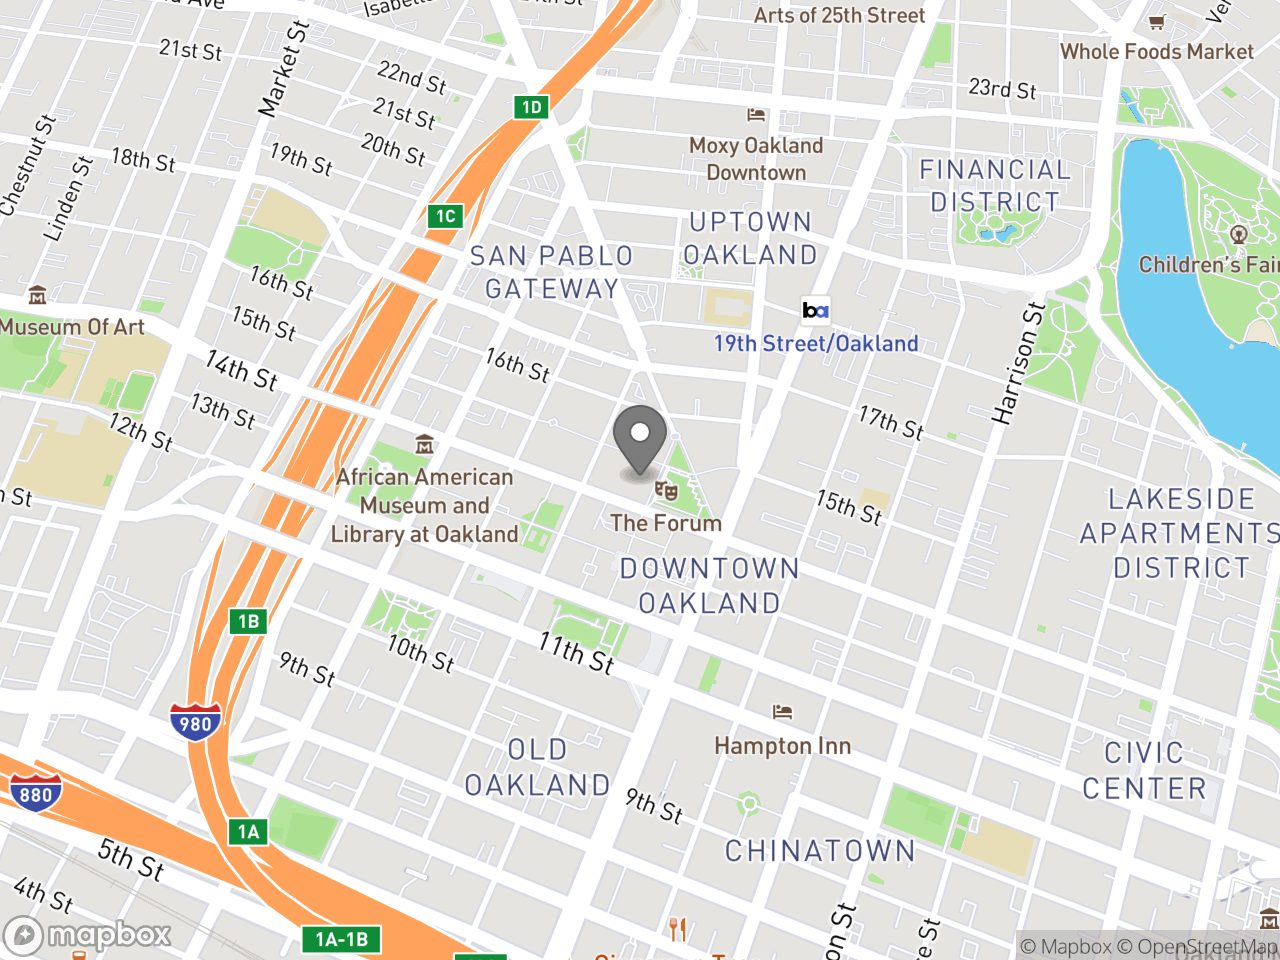 Map location for CANCELLED:  Police Commission November 28, 2019, located at 1 Frank H. Ogawa Plaza in Oakland, CA 94612